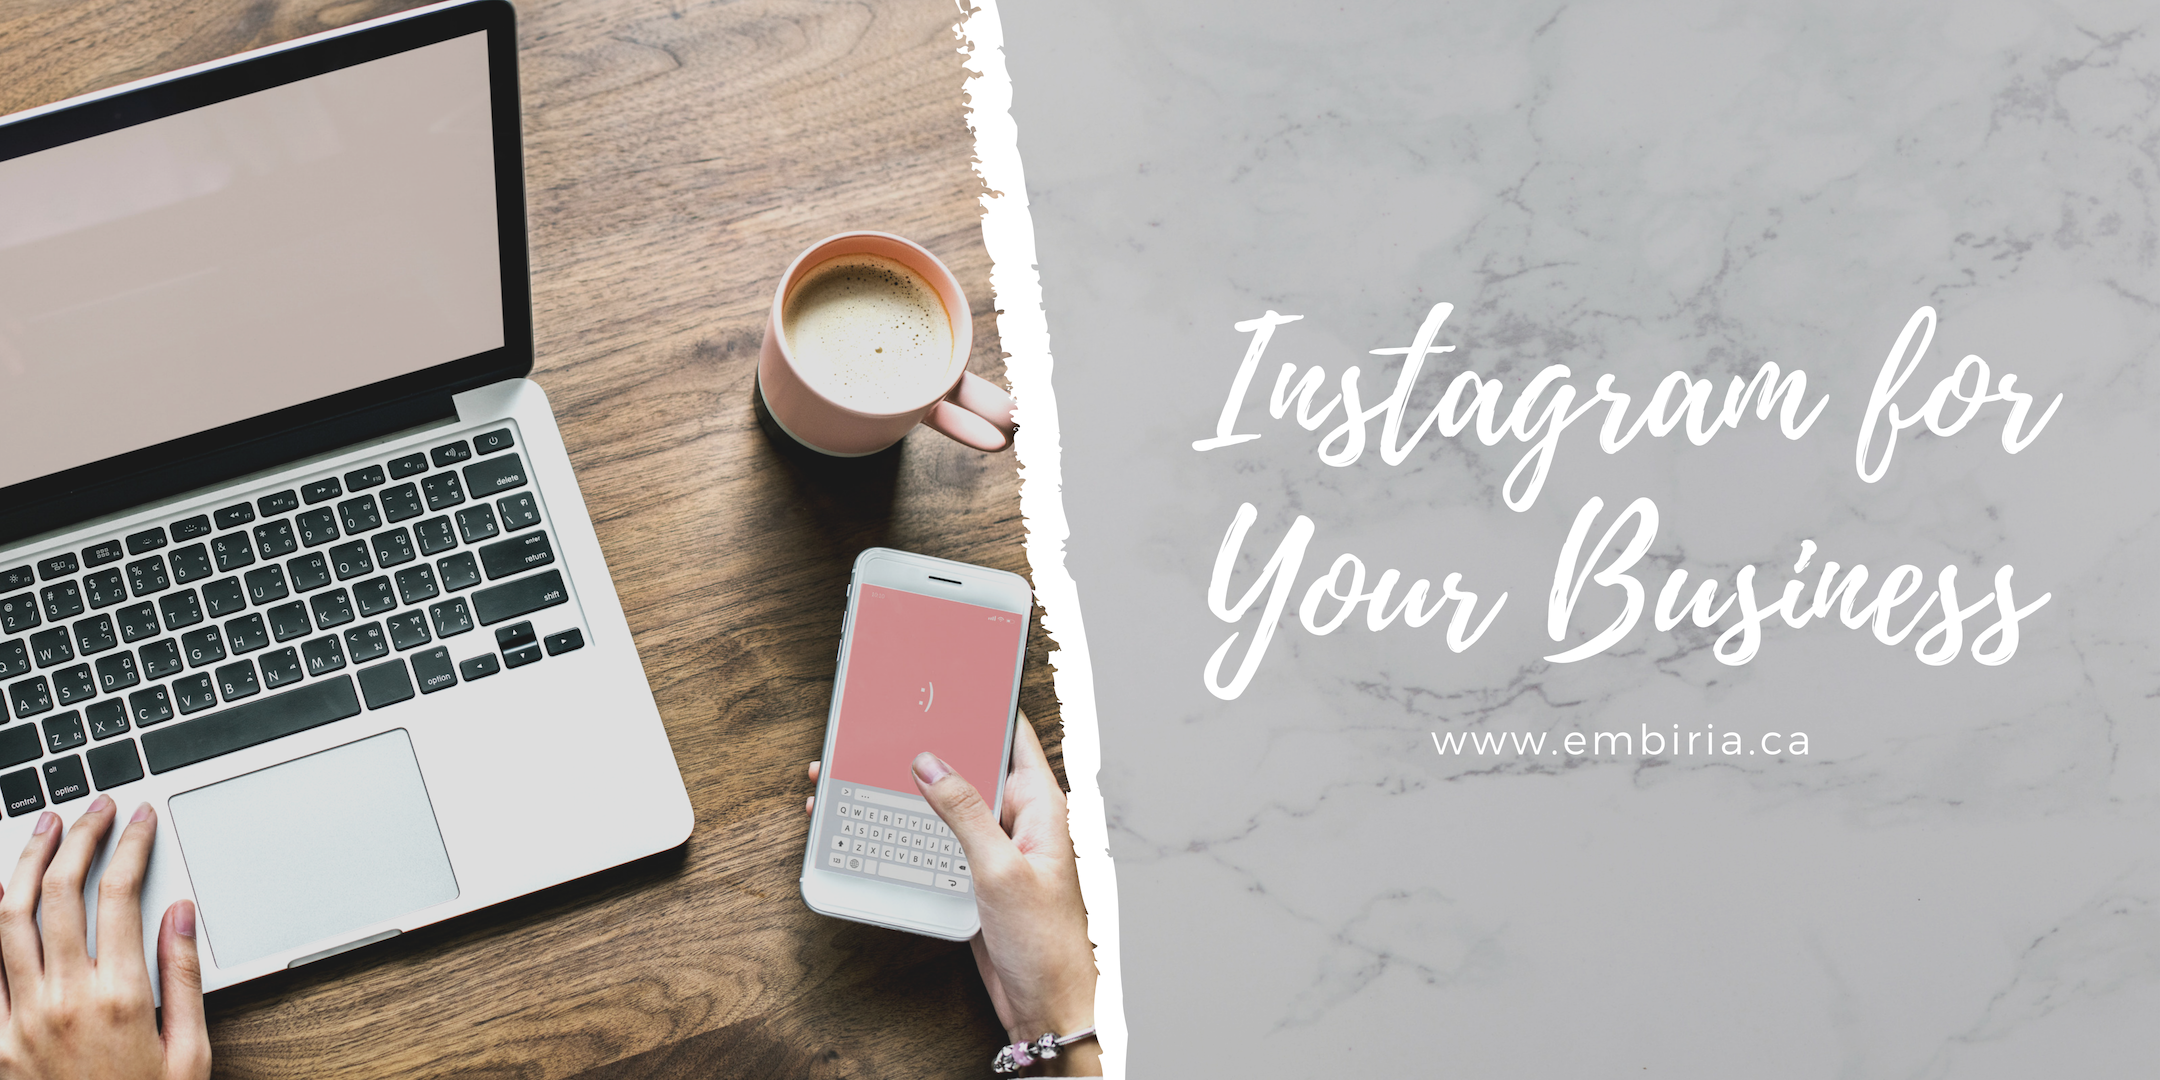 how-to-use-instagram-for-business-workshop-embiria.png